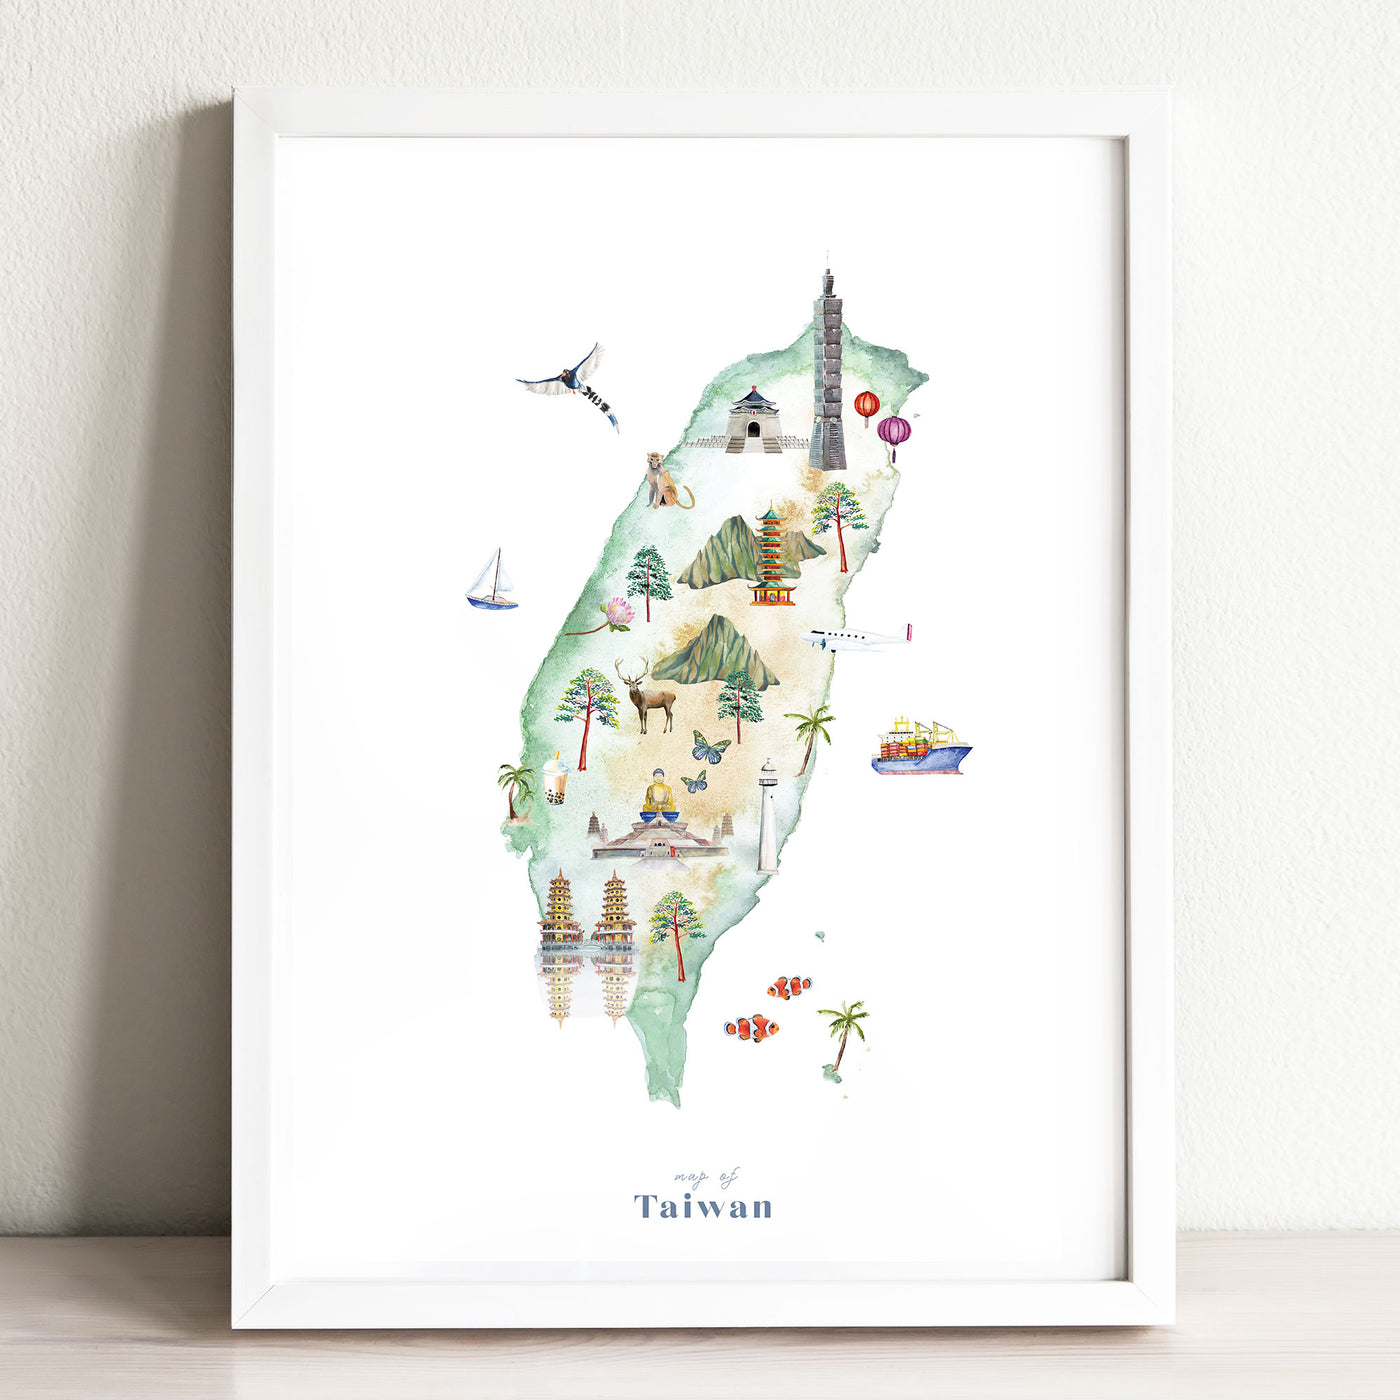 Taiwan Illustrated Map